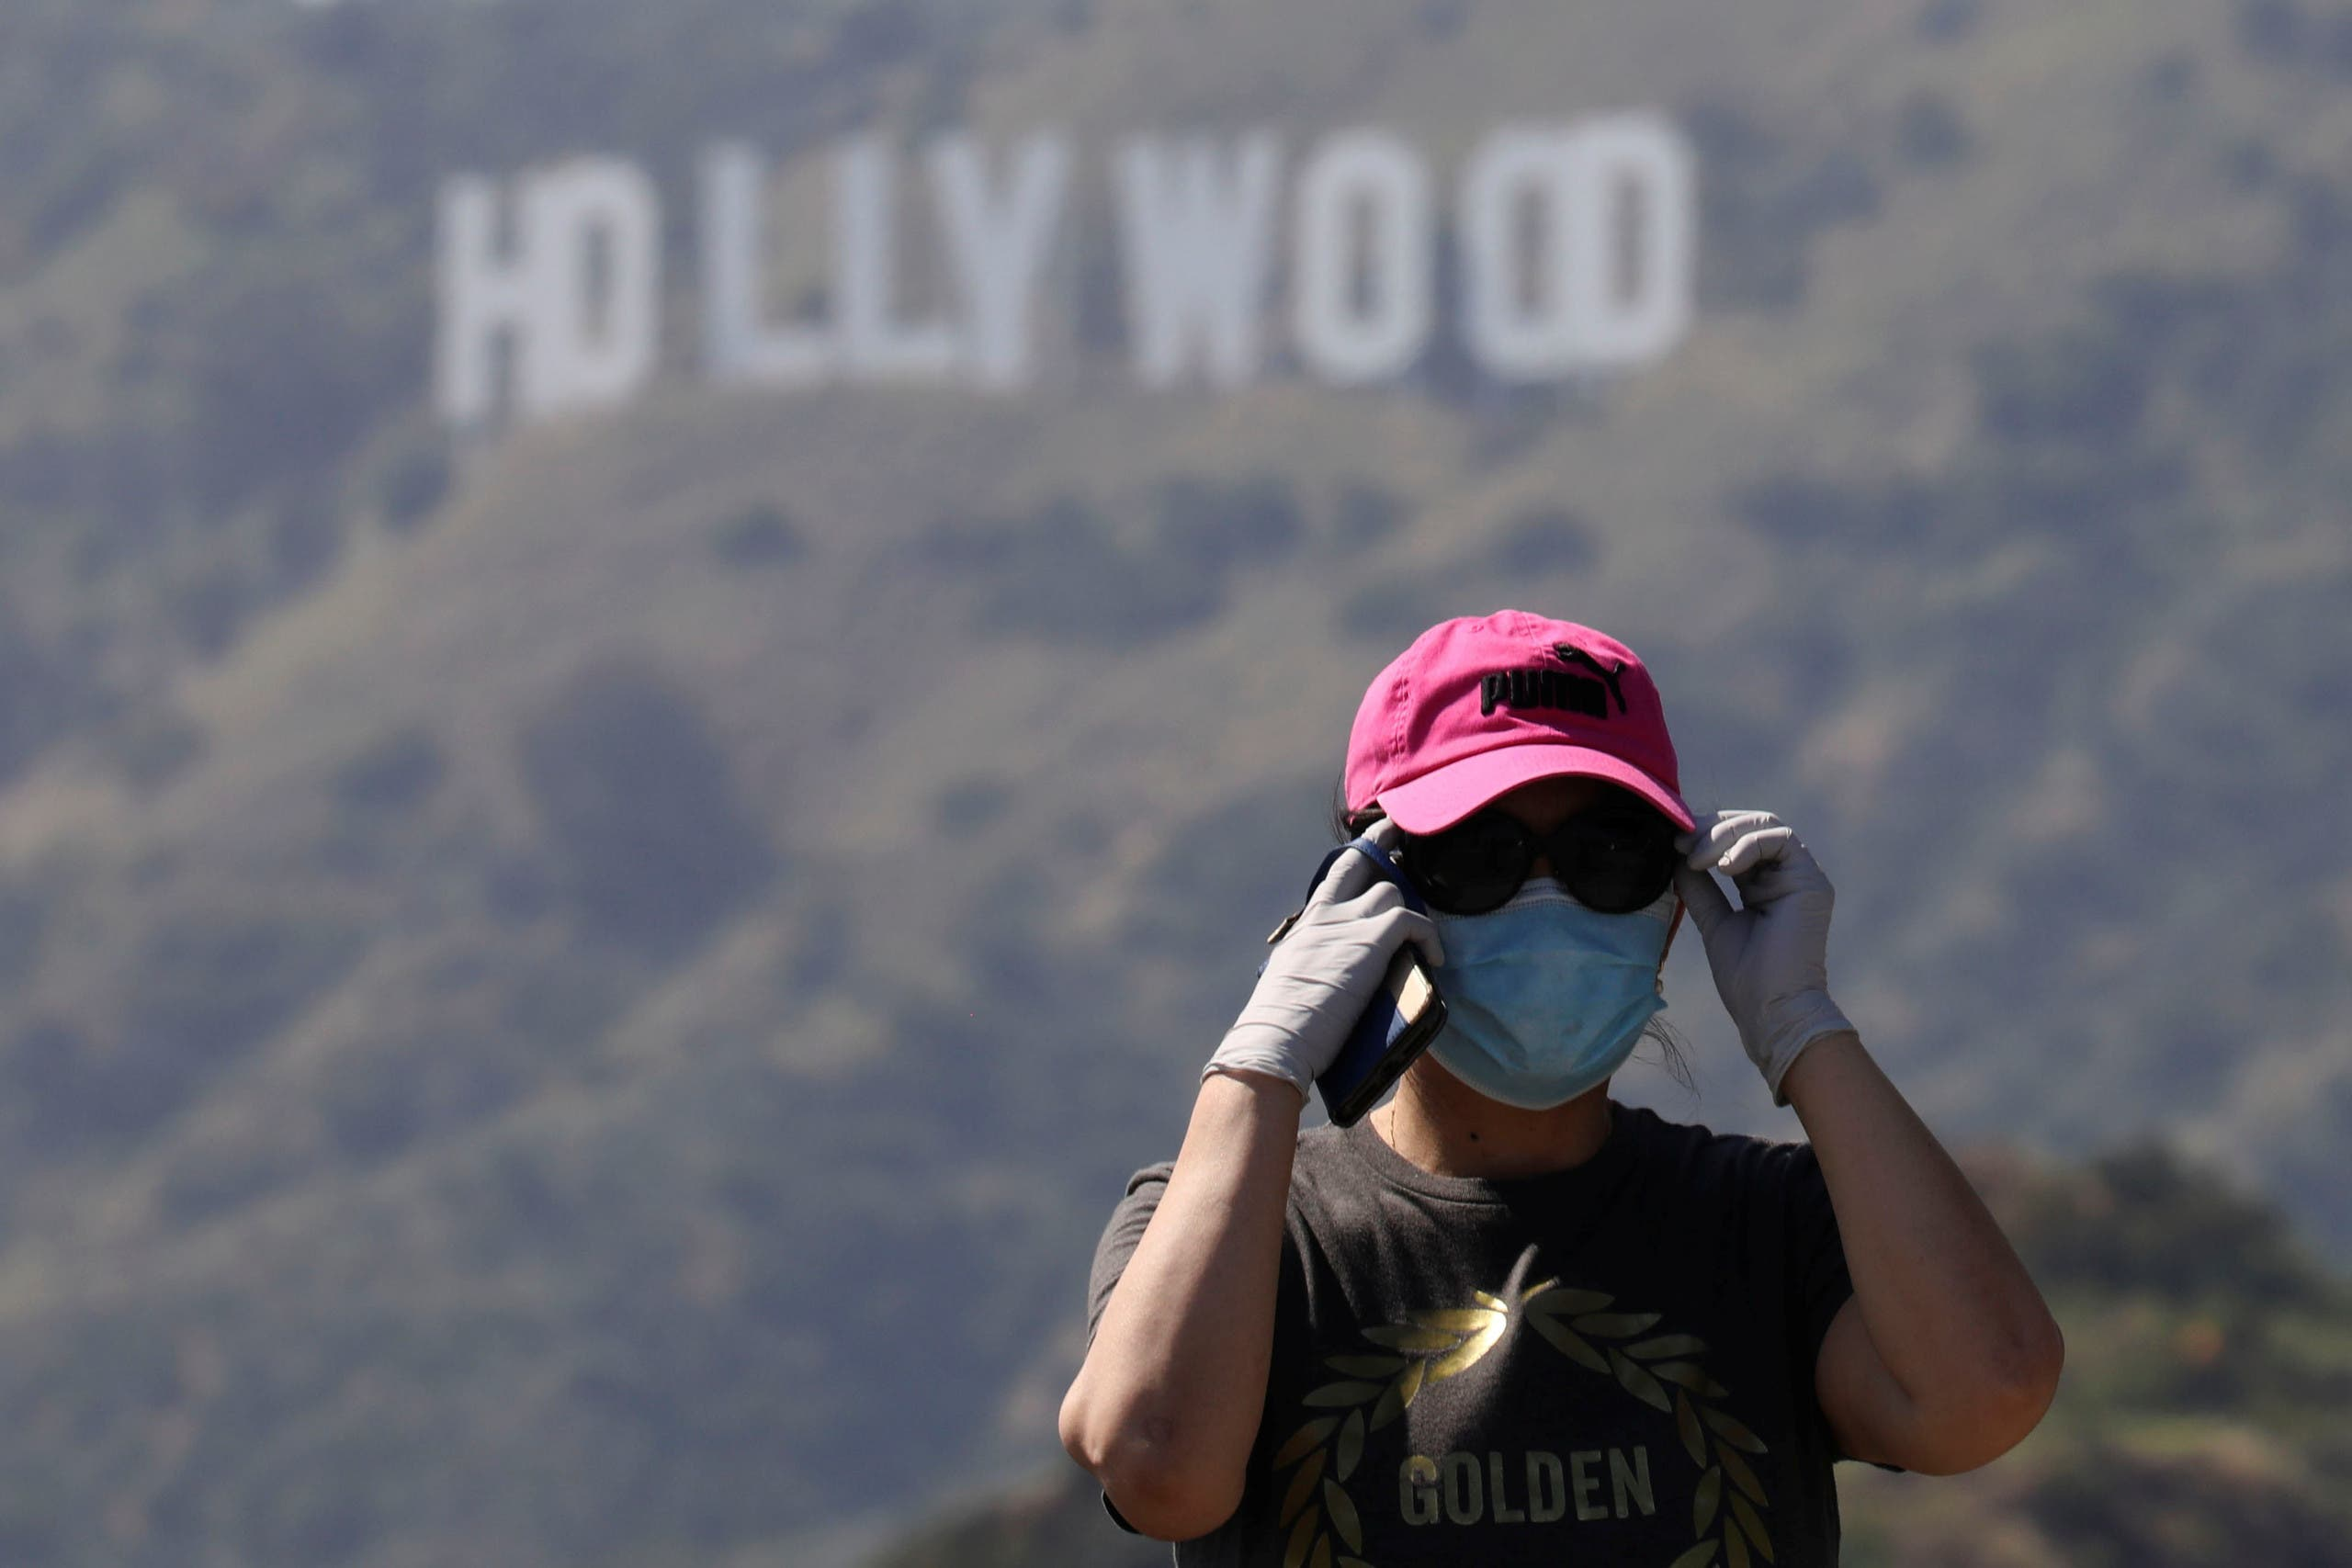 A person wearing a face mask and gloves adjusts glasses while taking photos of the Hollywood sign in Los Angeles, California, U.S., May 9, 2020. (Reuters)